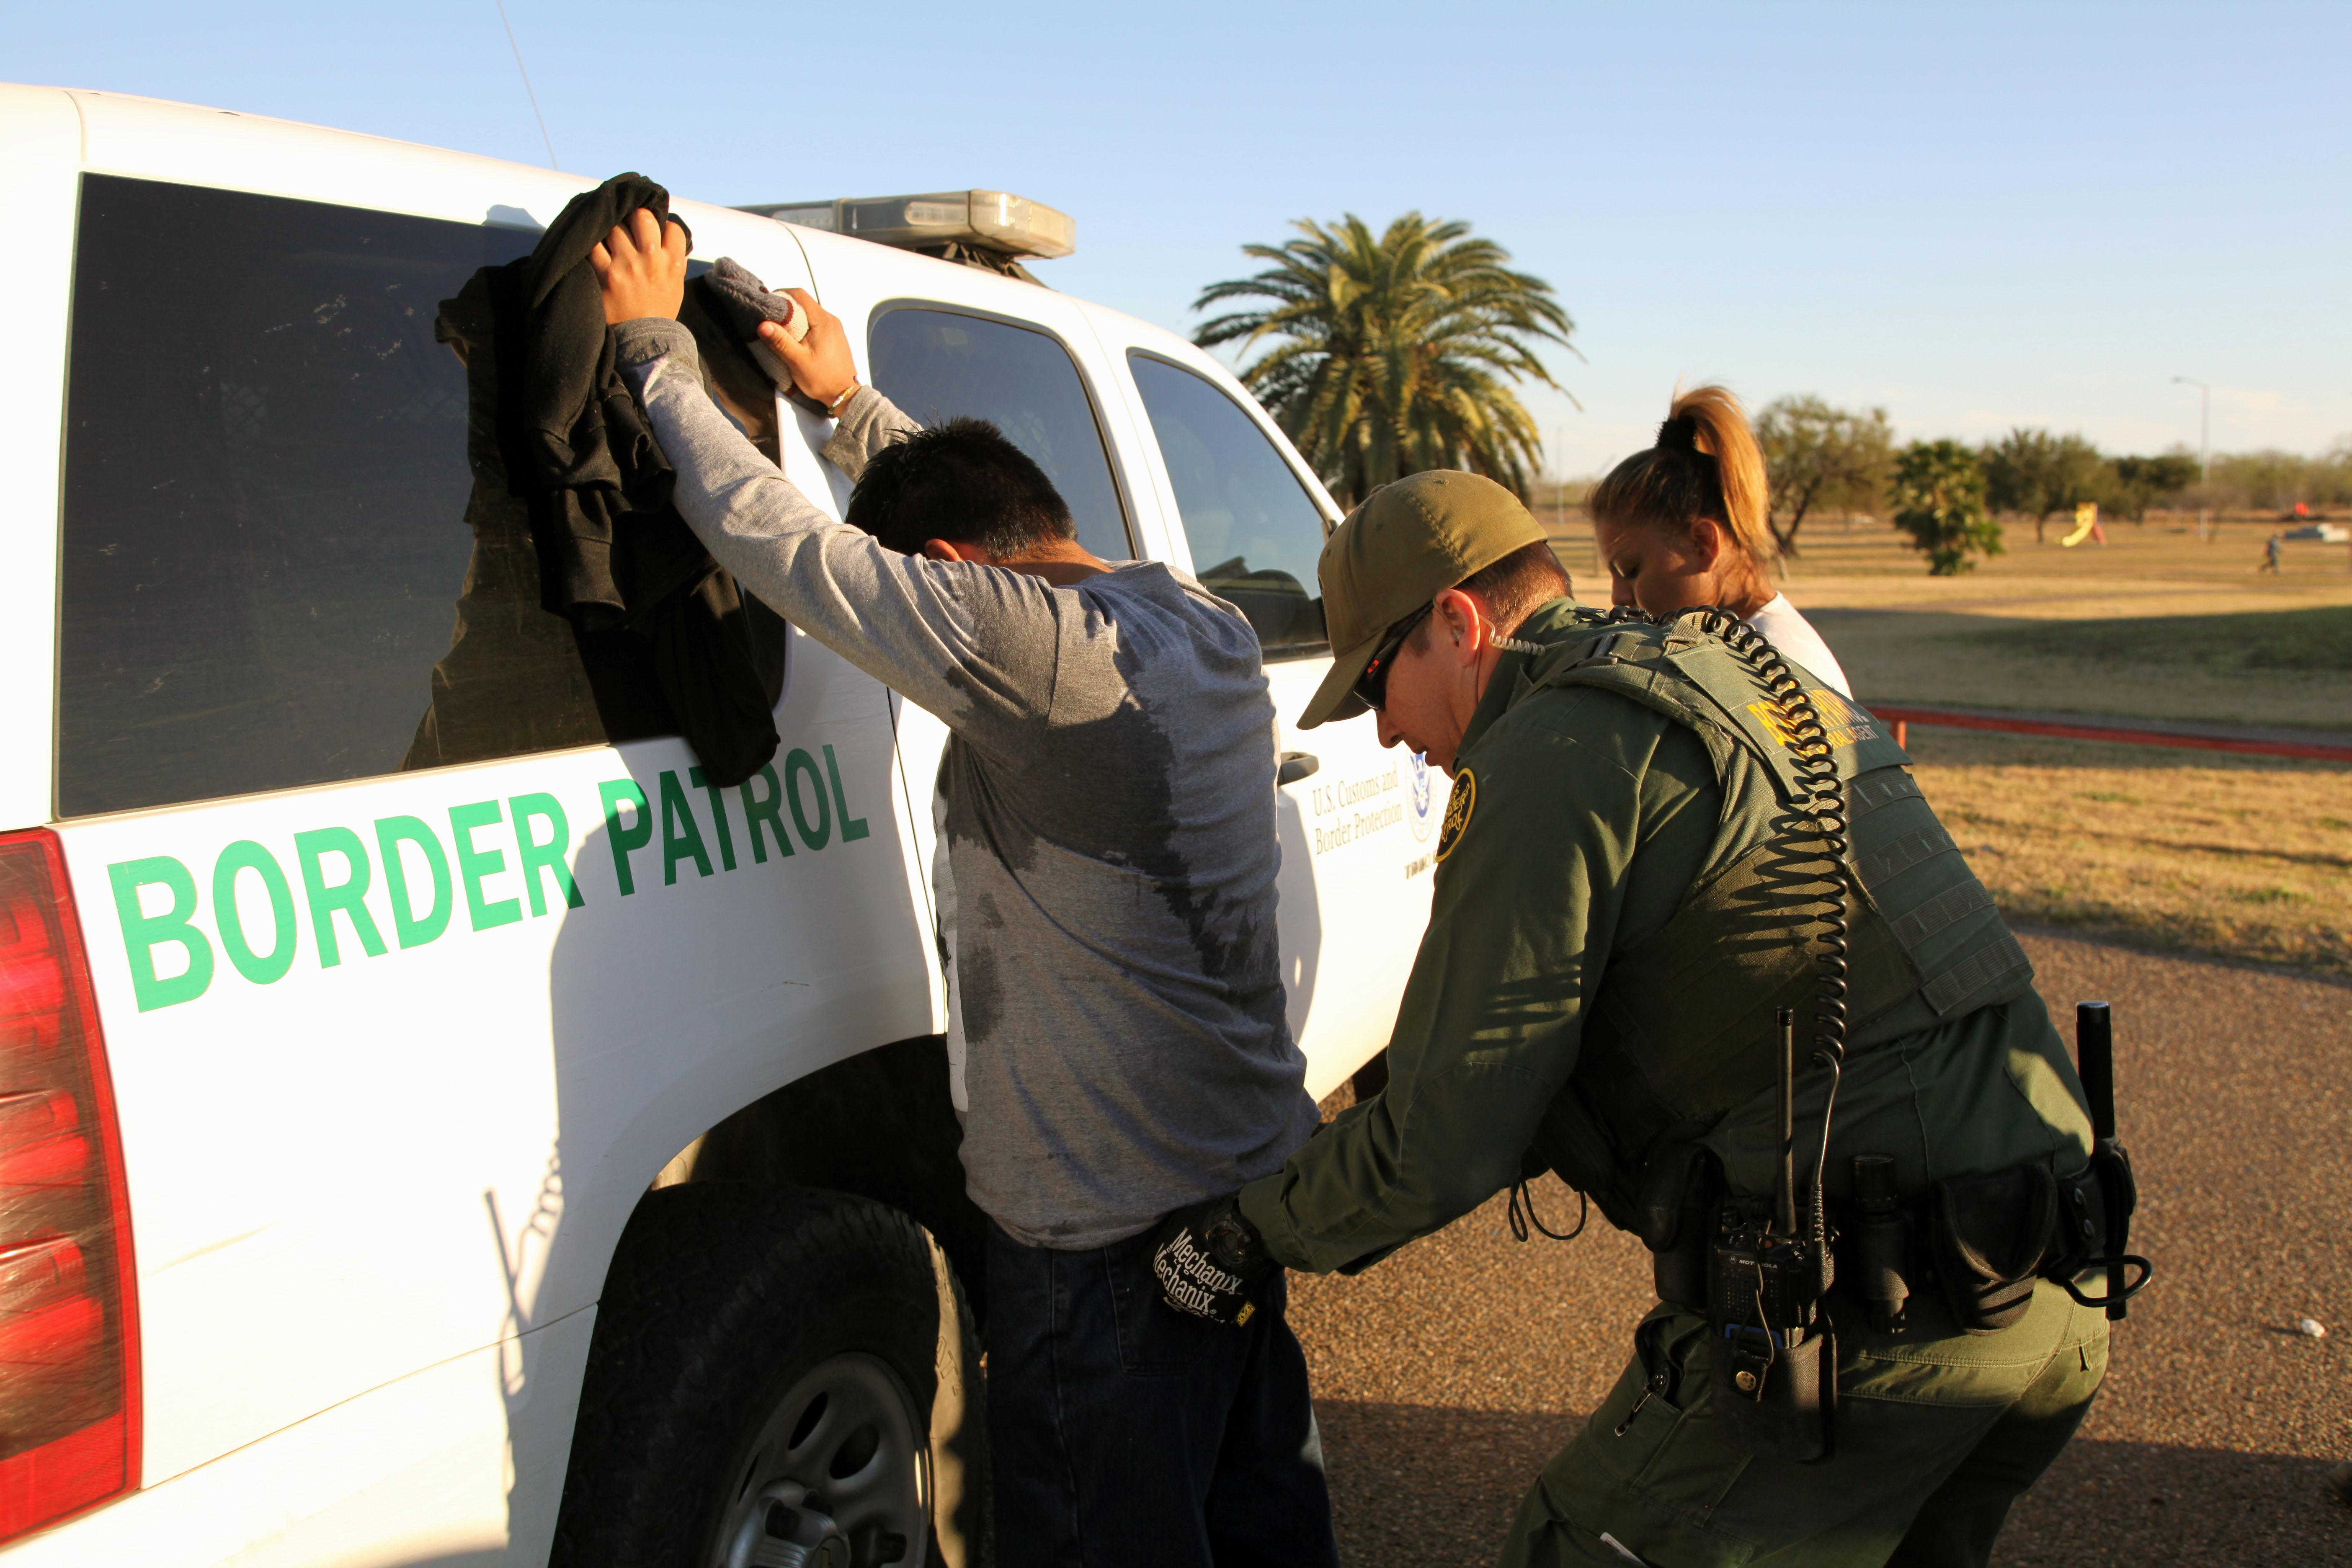 A Border Patrol agent takes a man into custody